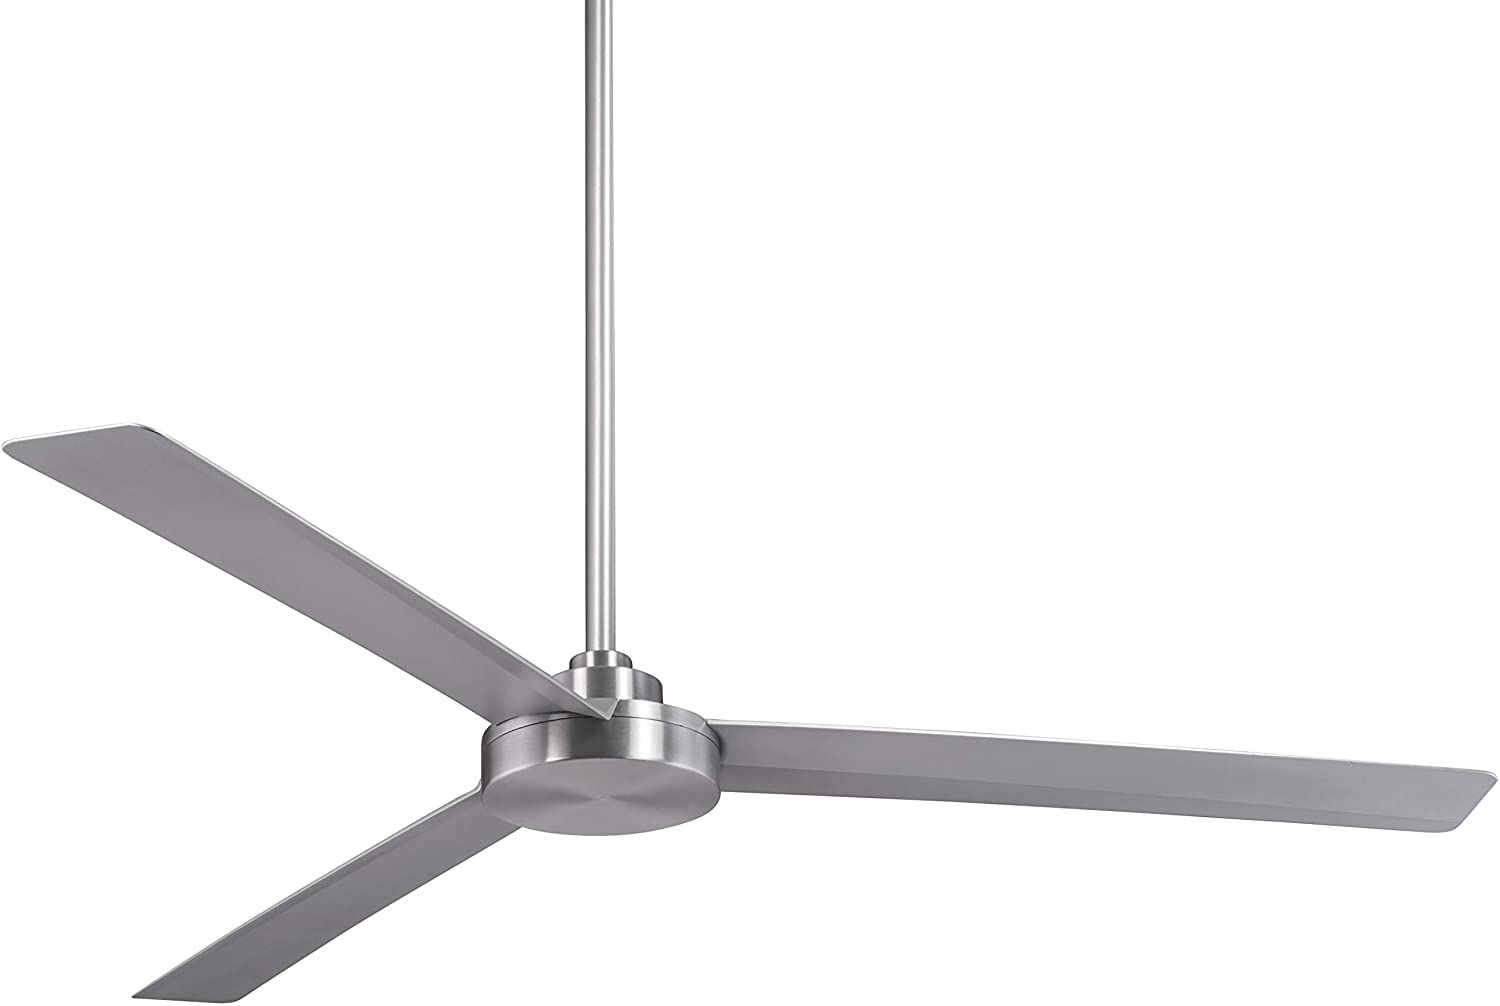 "Minka Aire F624-ABD Roto XL, 62"" 3-Blades Ceiling Fan in Brushed Aluminum Finish with Silver Blades"